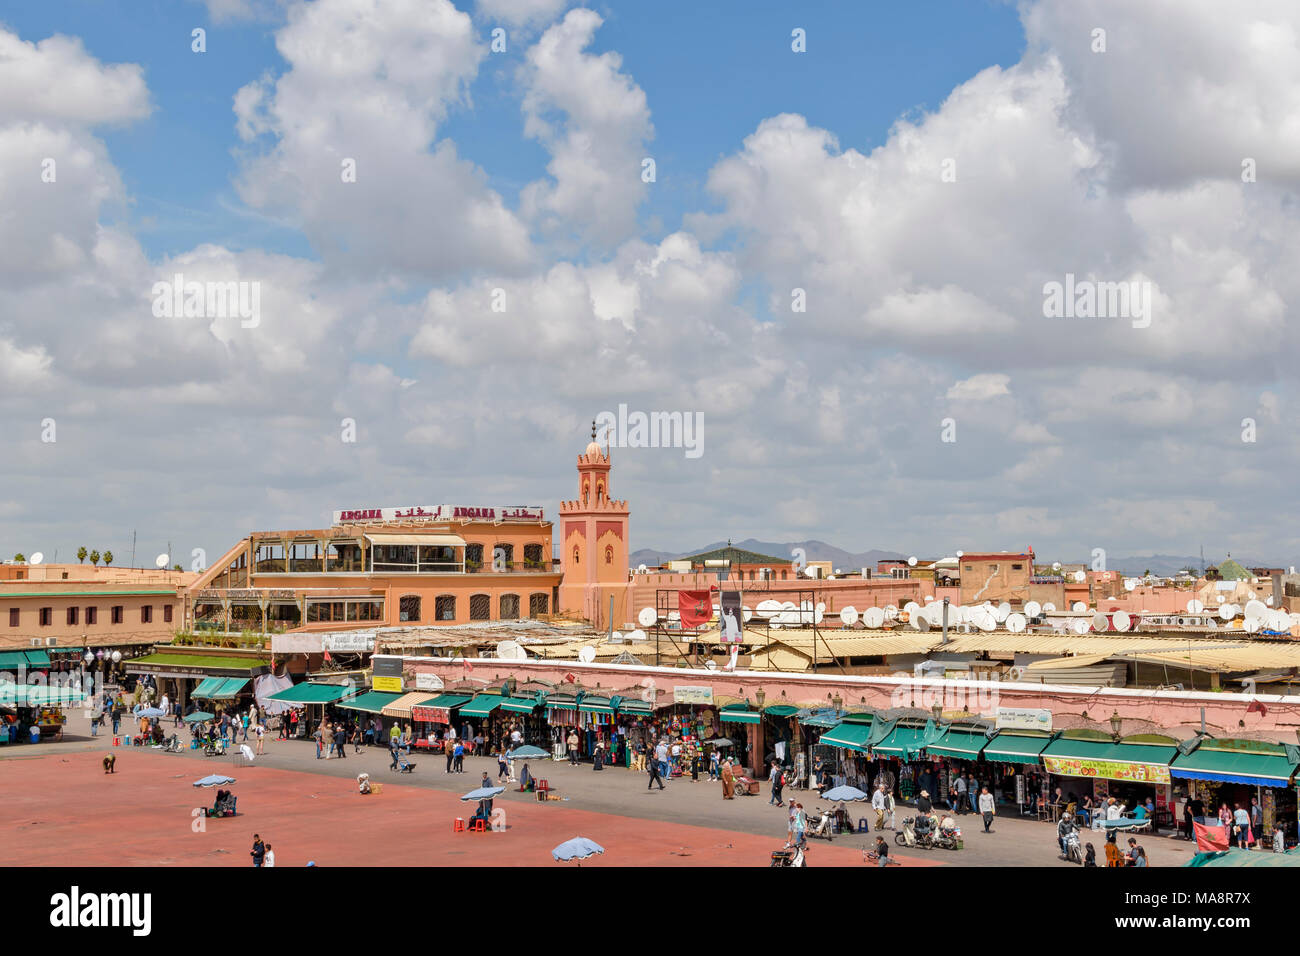 MOROCCO MARRAKECH PLACE JEMAA EL FNA STALLS SHOPS ENTERTAINERS CROWDS PART THREE - Stock Image